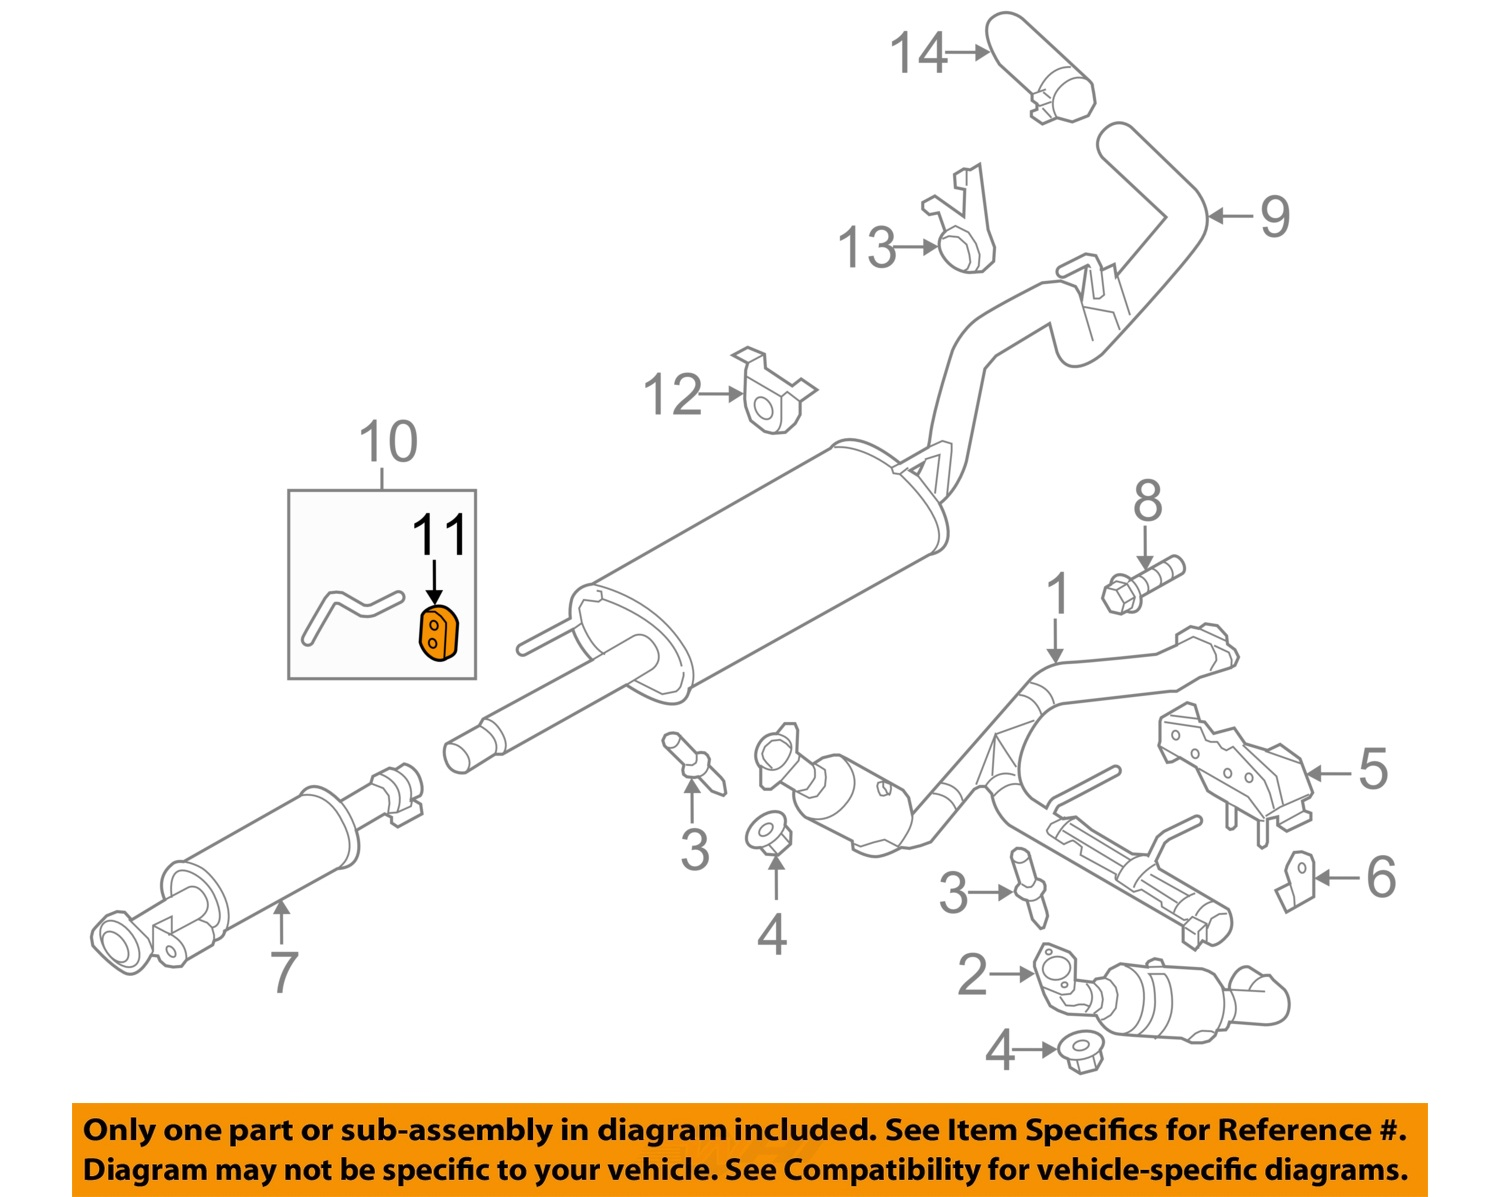 2004 F150 Exhaust Diagram Ford System 2005 4 6l F 150 Engine Pulley Auto Parts